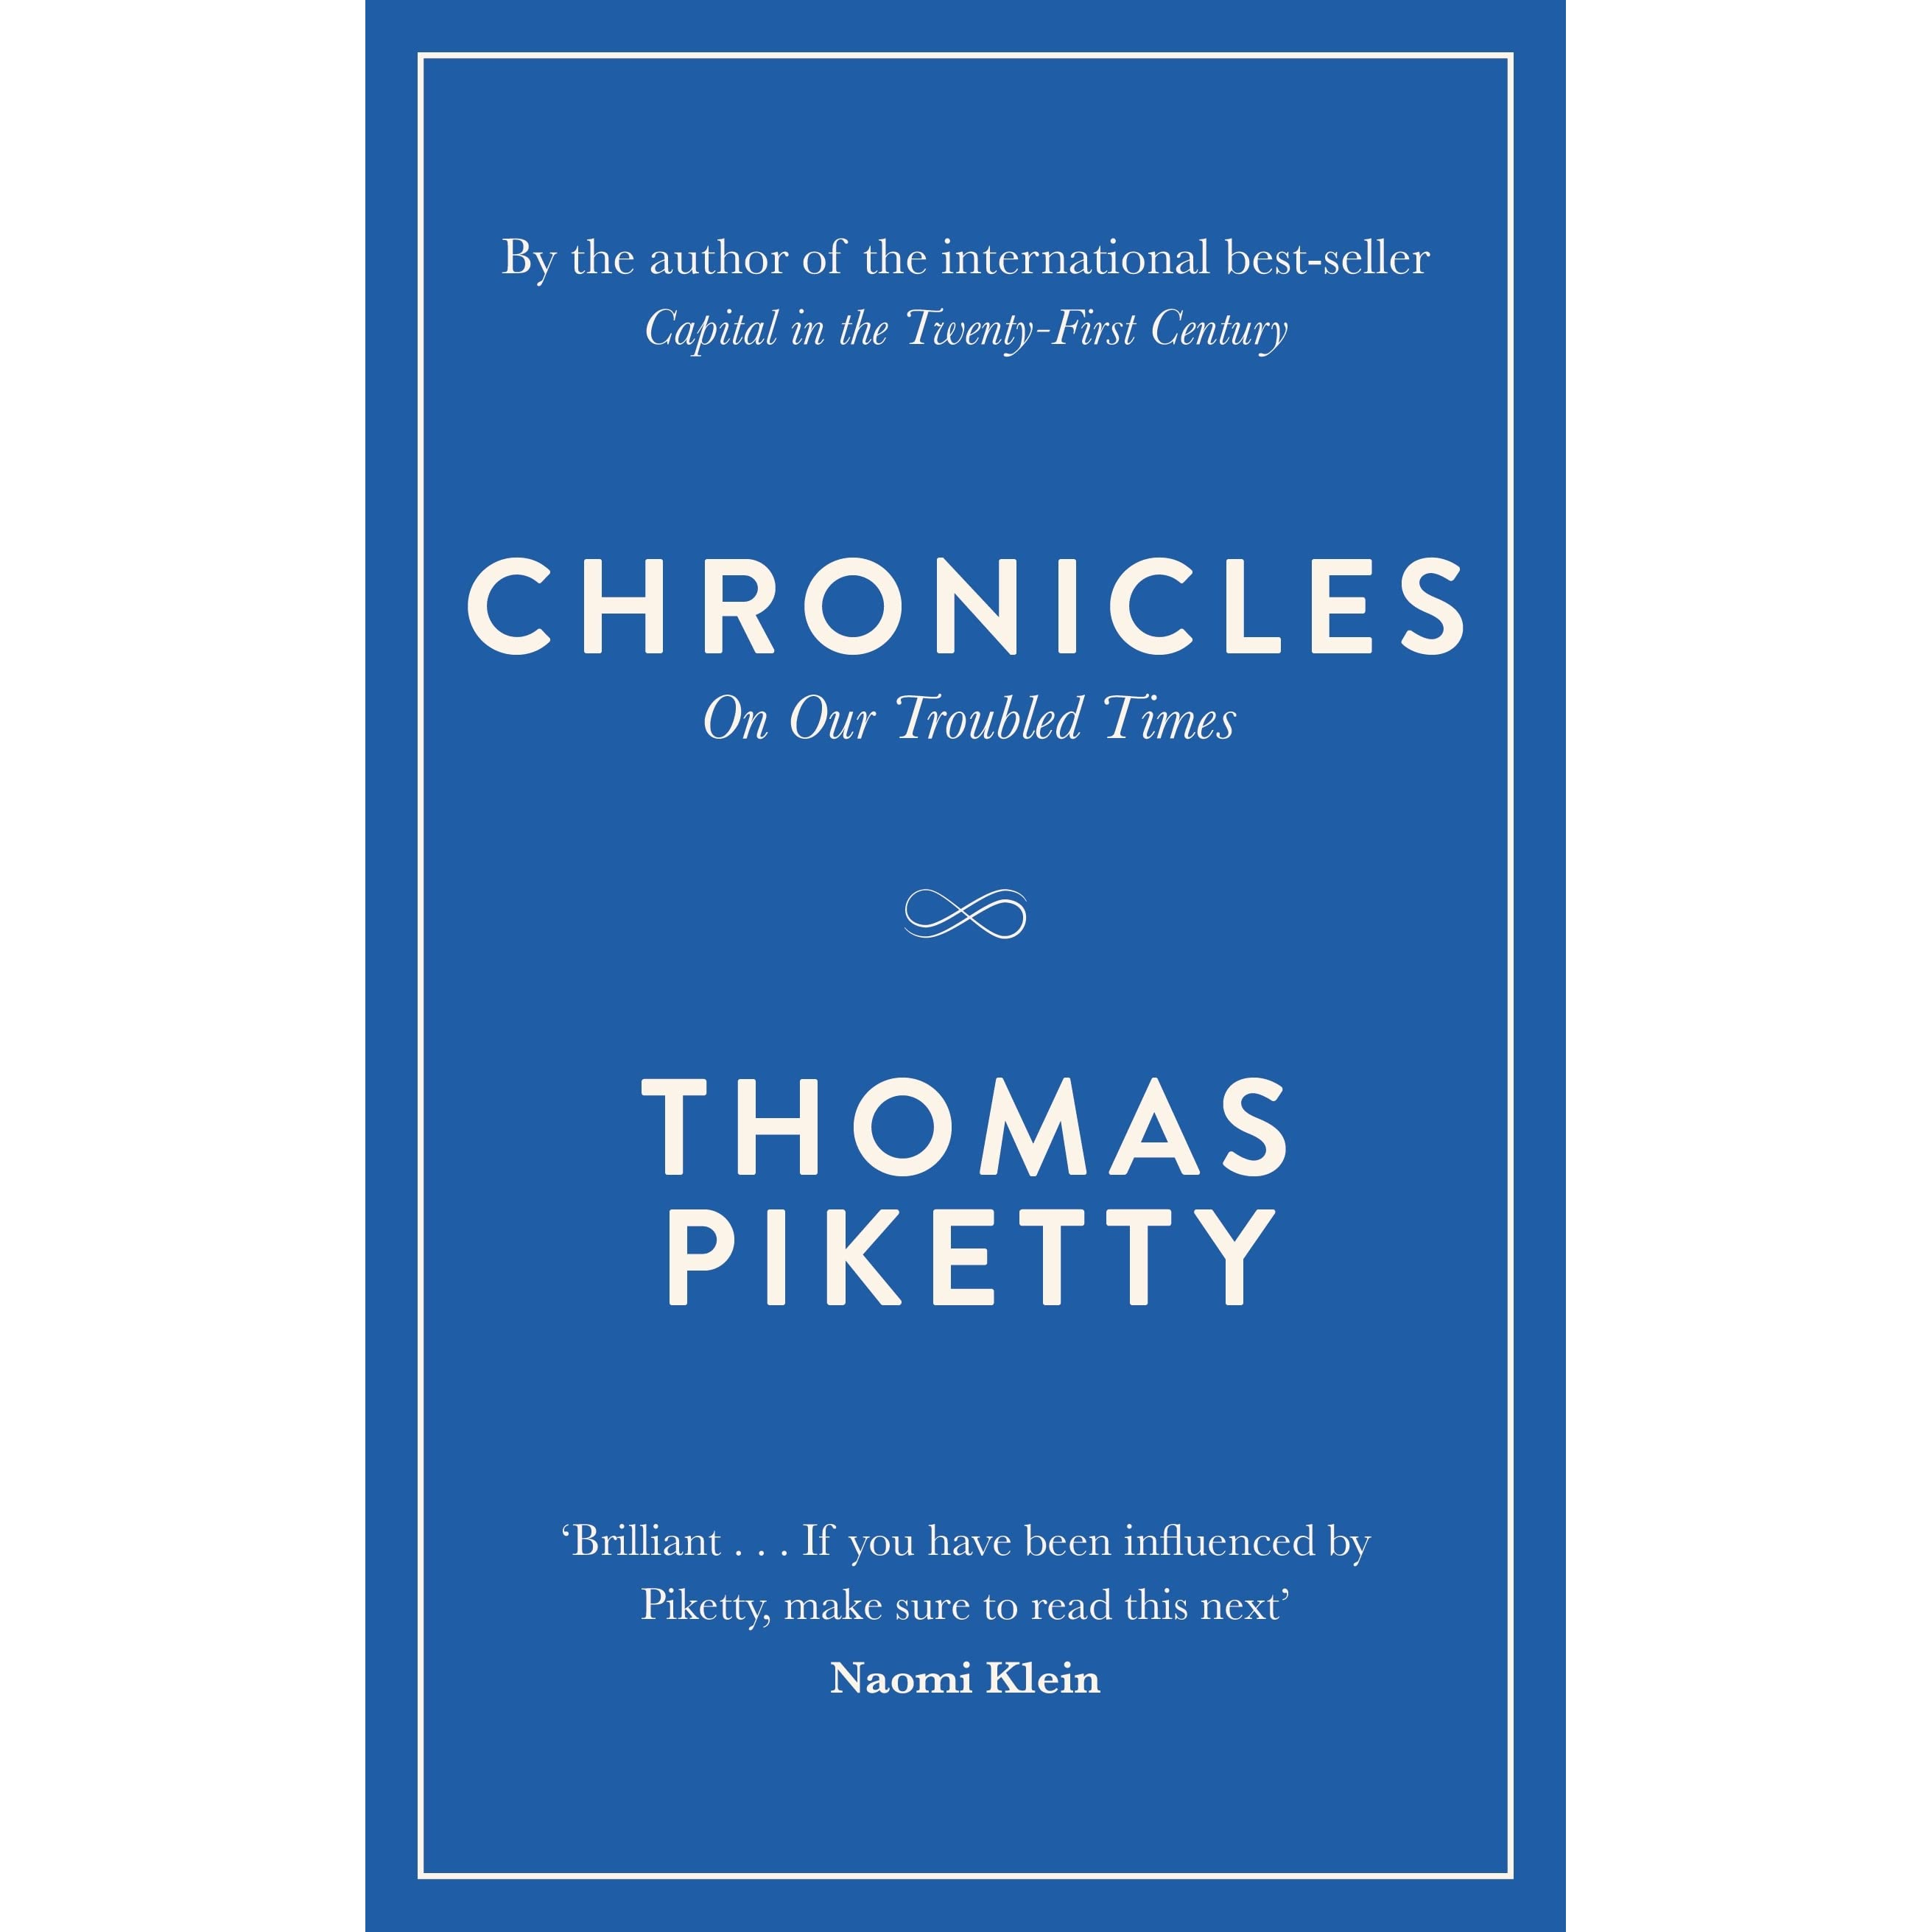 piketty phd thesis